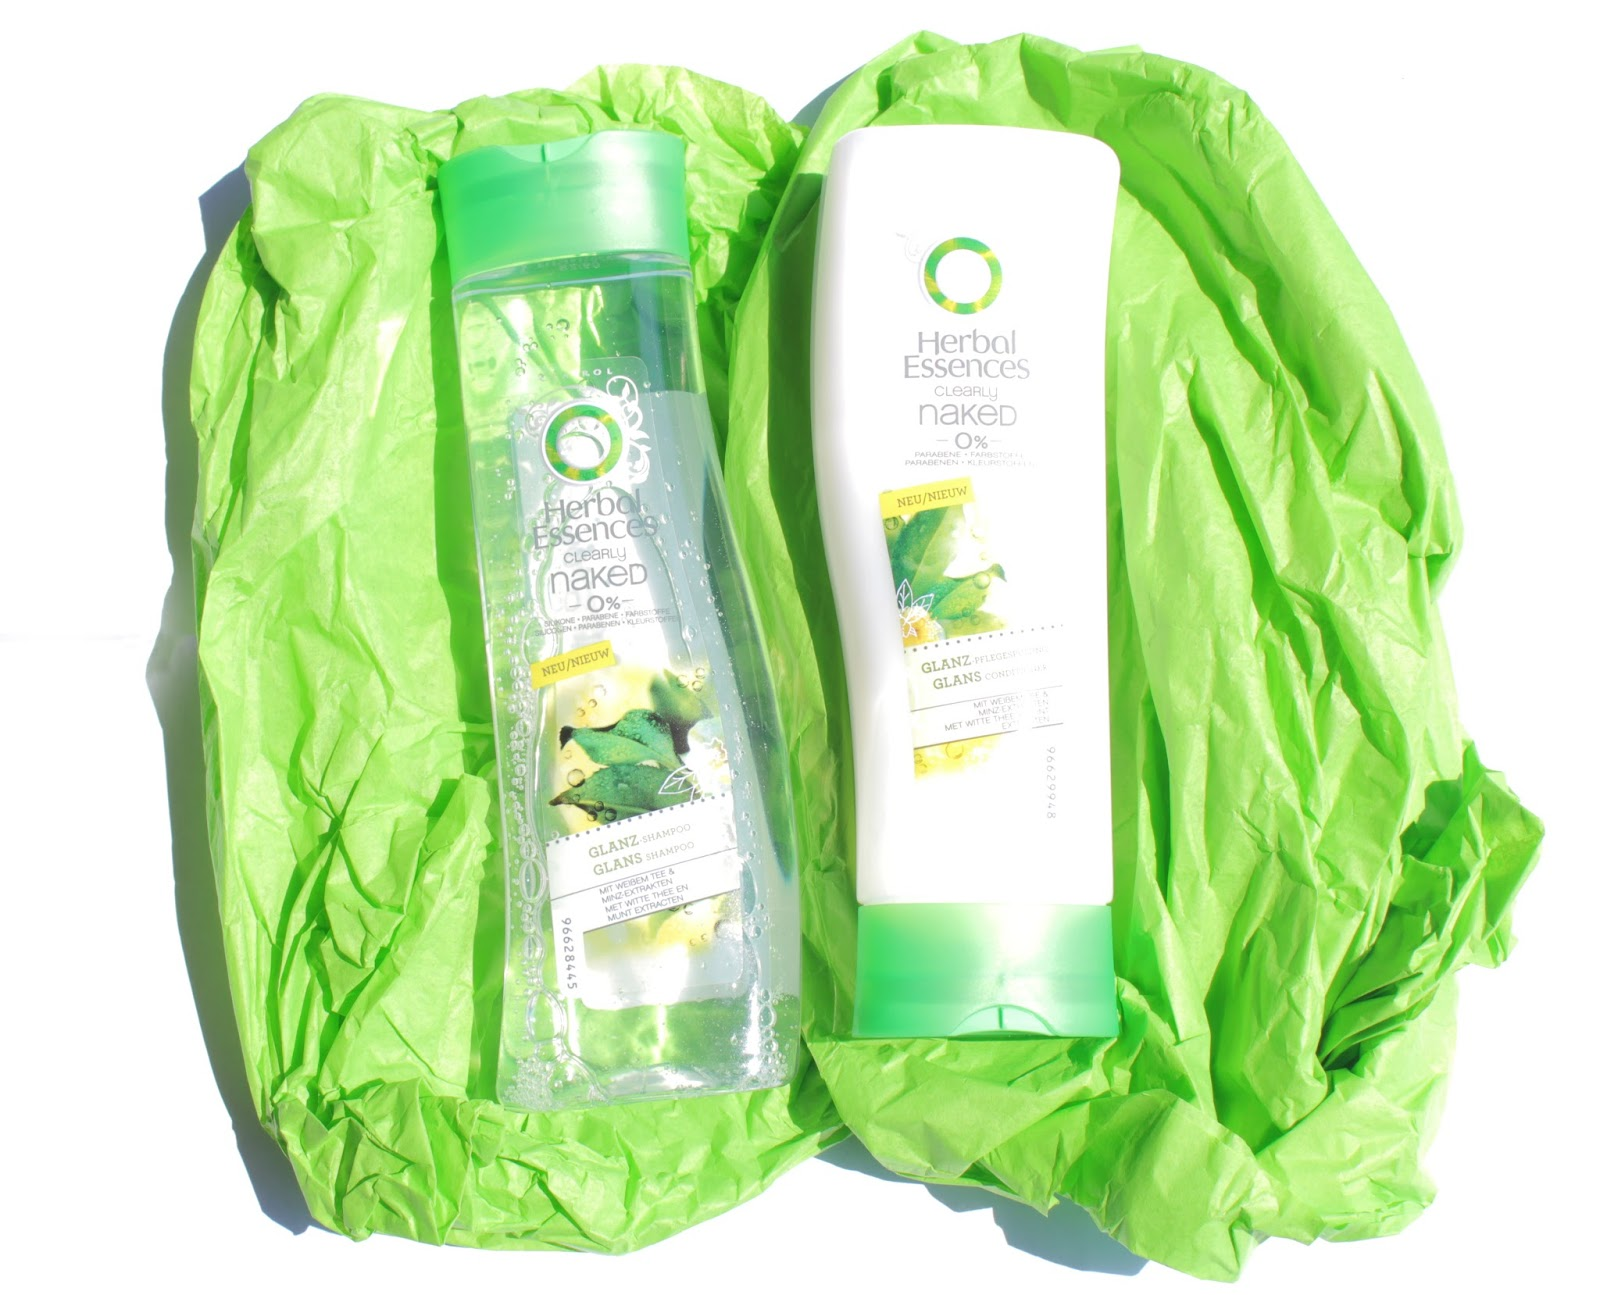 herbal essences clearly naked glanz pflegeserie review. Black Bedroom Furniture Sets. Home Design Ideas